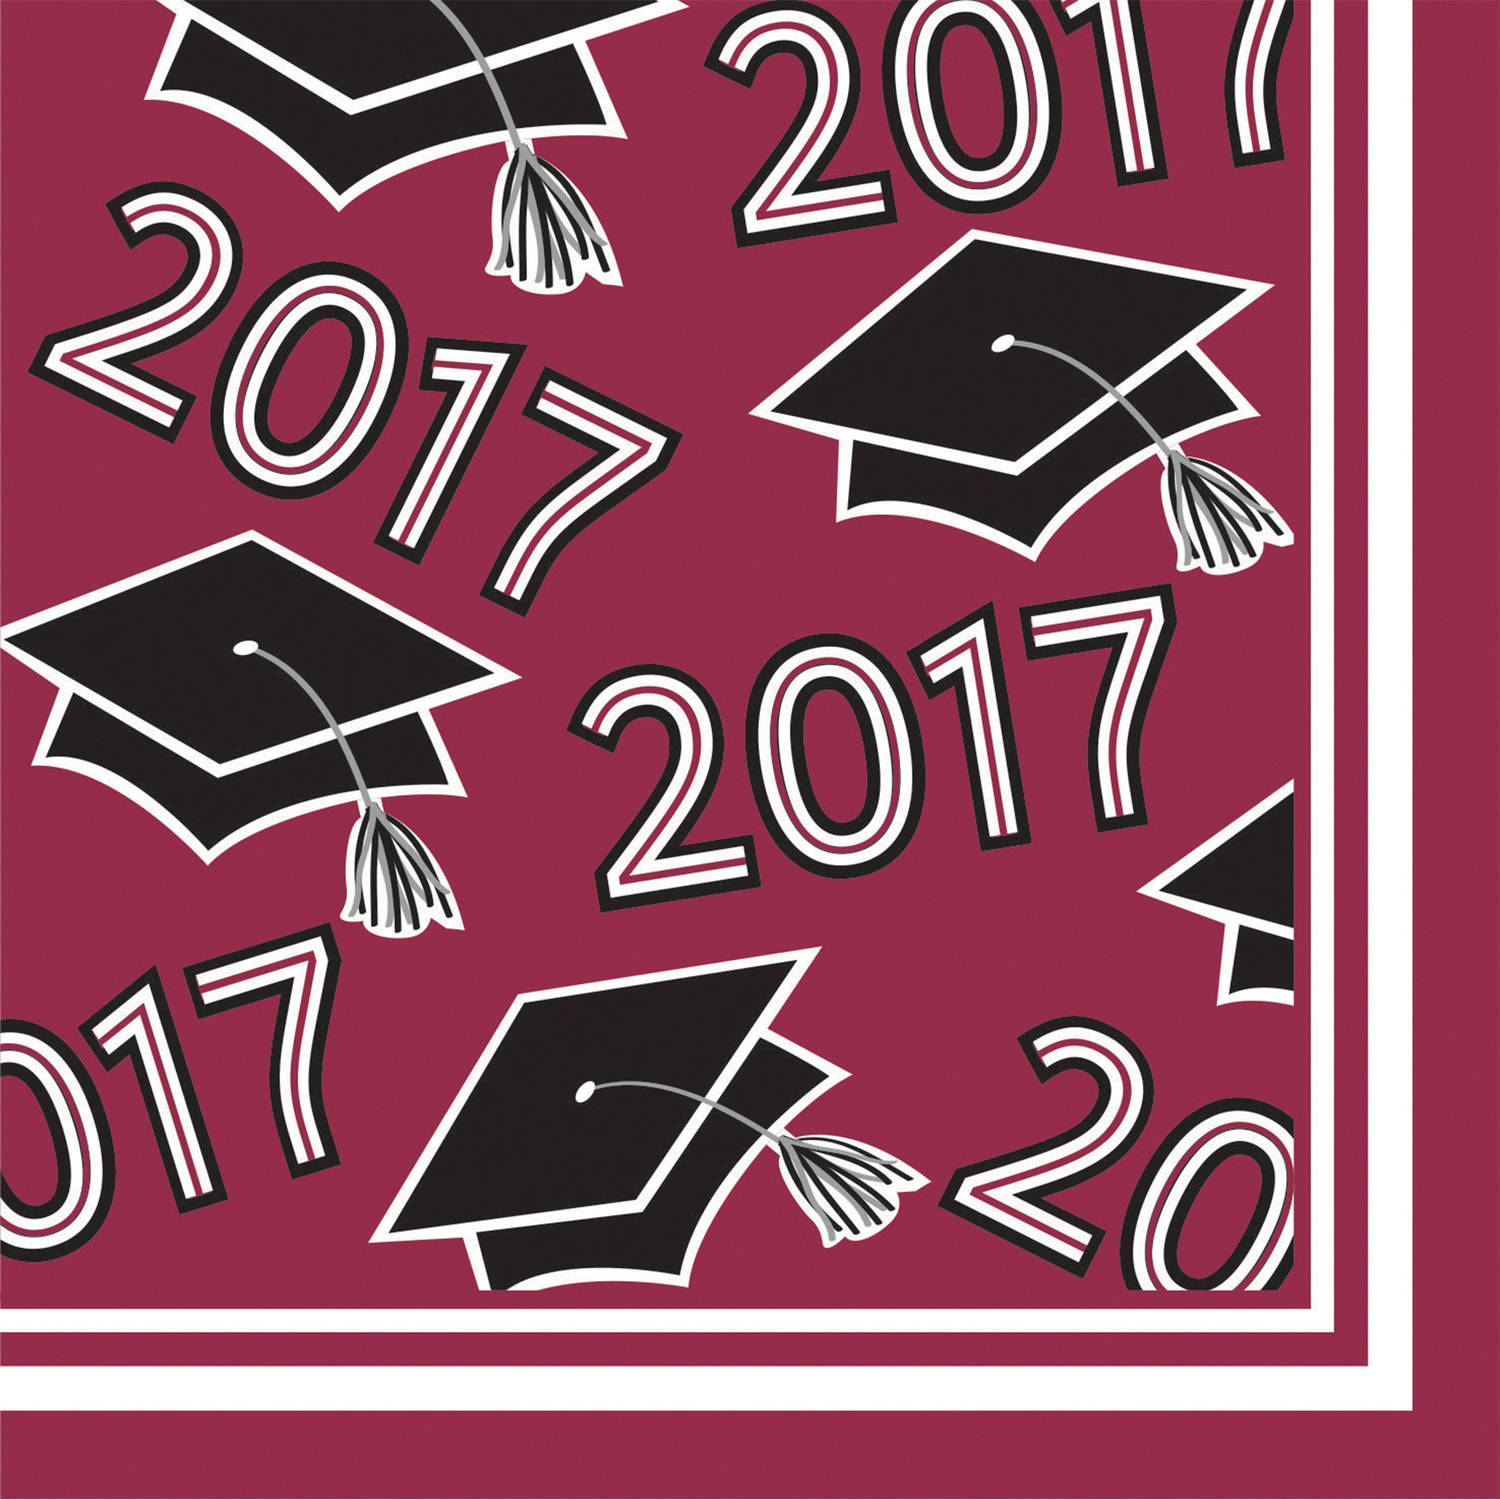 Class of 2017 Burgundy Beverage Napkins, 36pk by CREATIVE CONVERTING